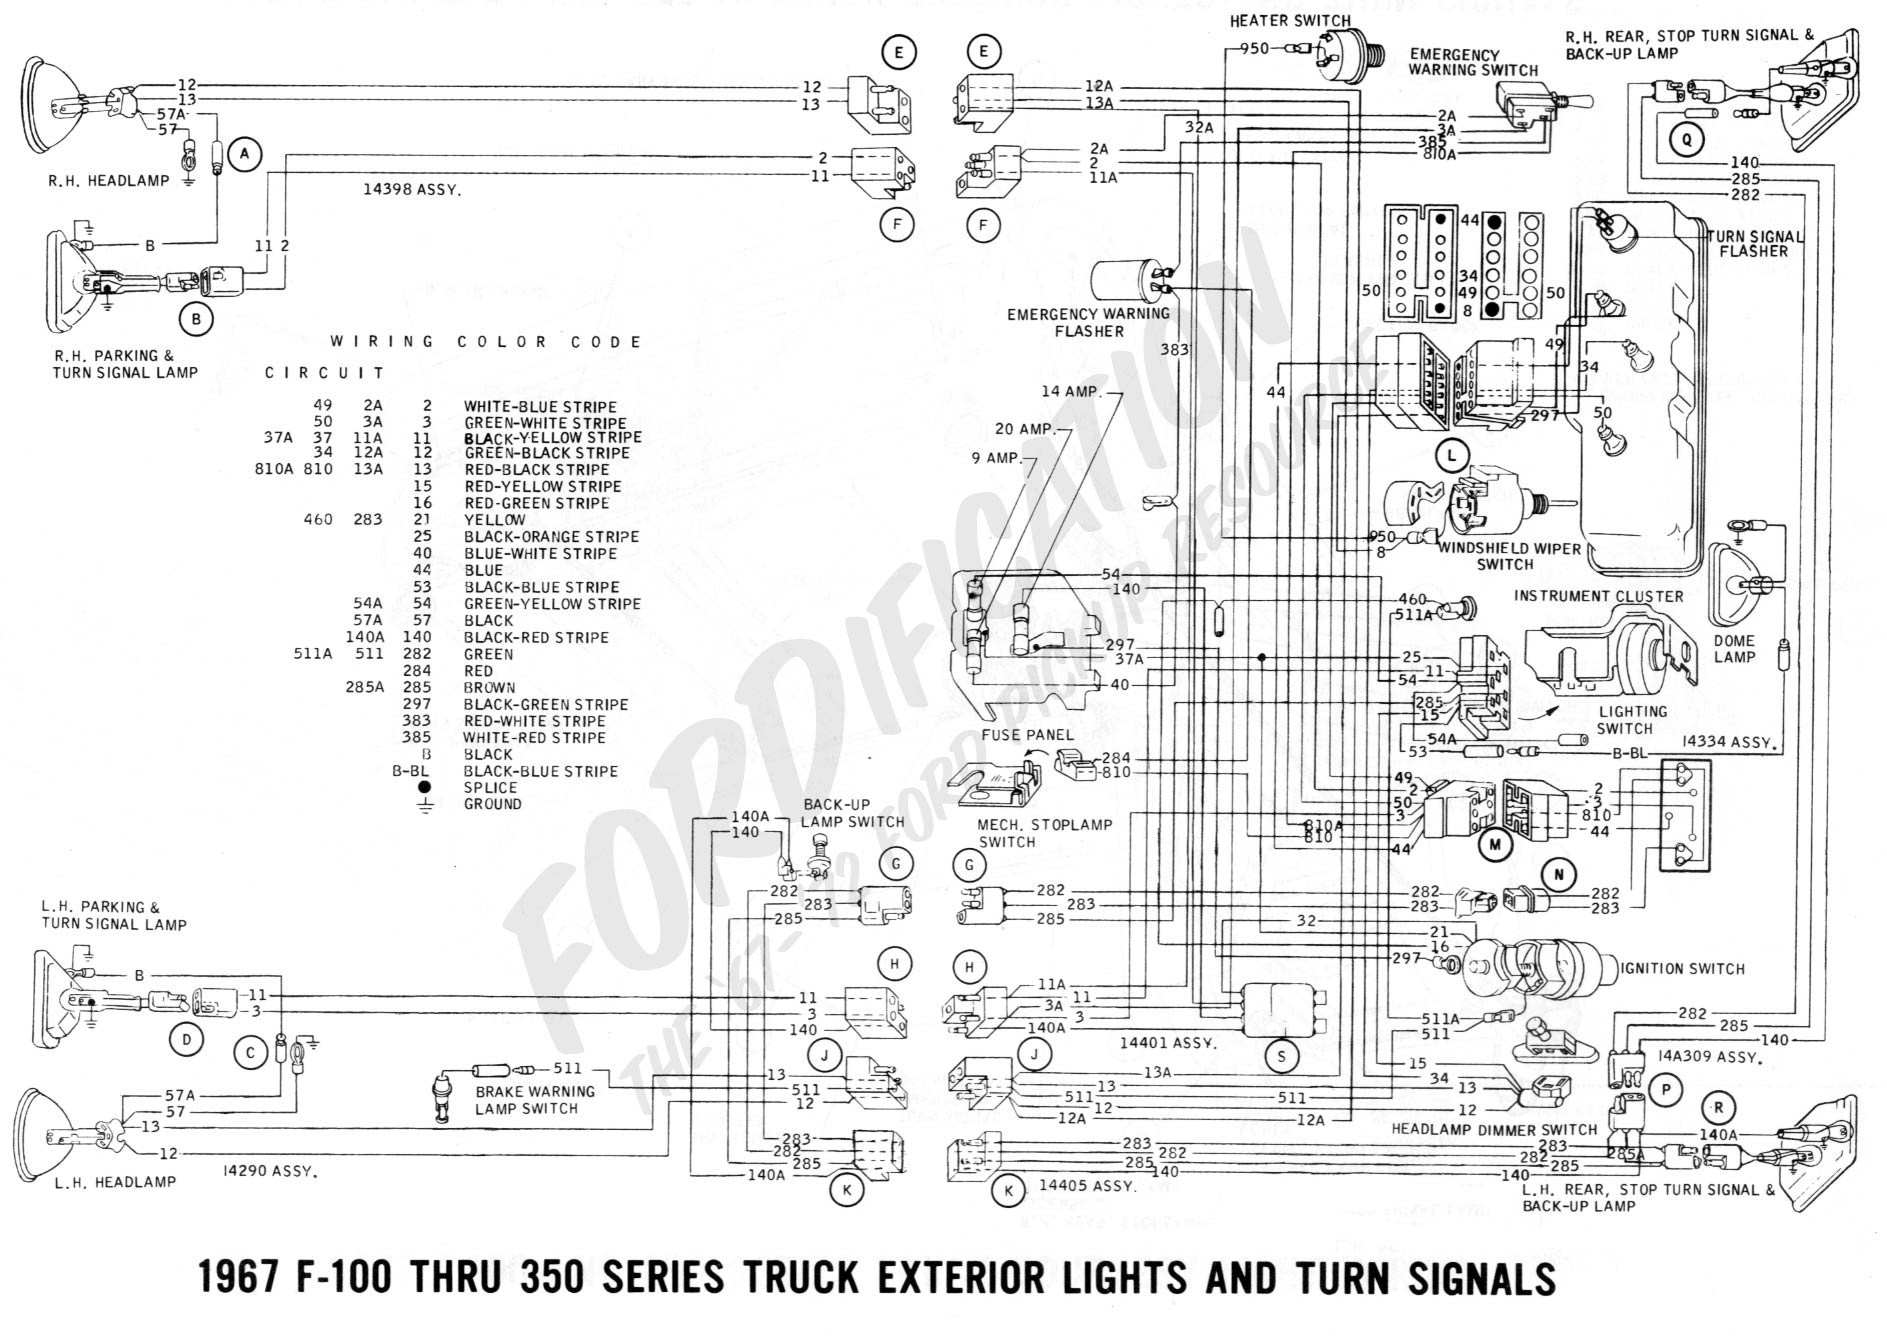 1951 F5 Ford Wiring Diagram Vehicle Diagrams F1 Truck Turn Signal Free Download Tail Light On 1979 Trusted Rh Dafpods Co 1950 Harness